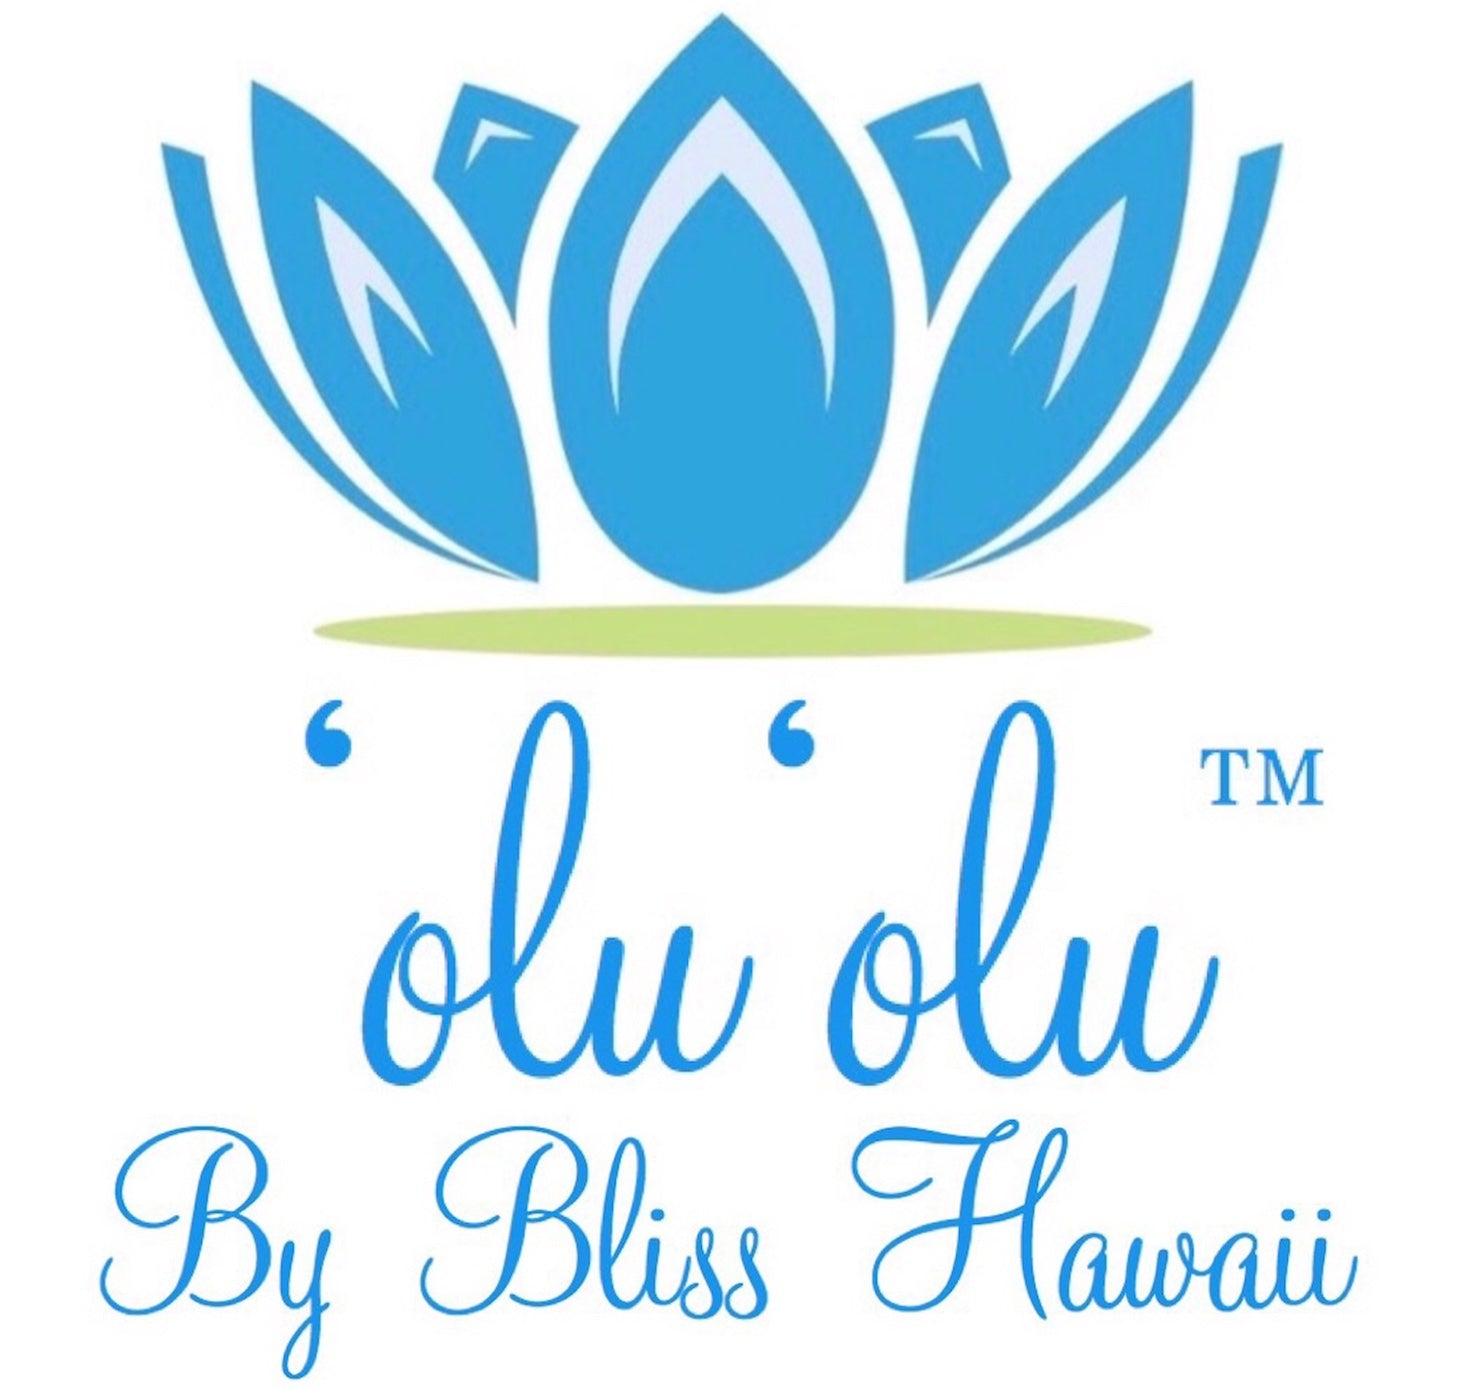 Bliss Hawaii